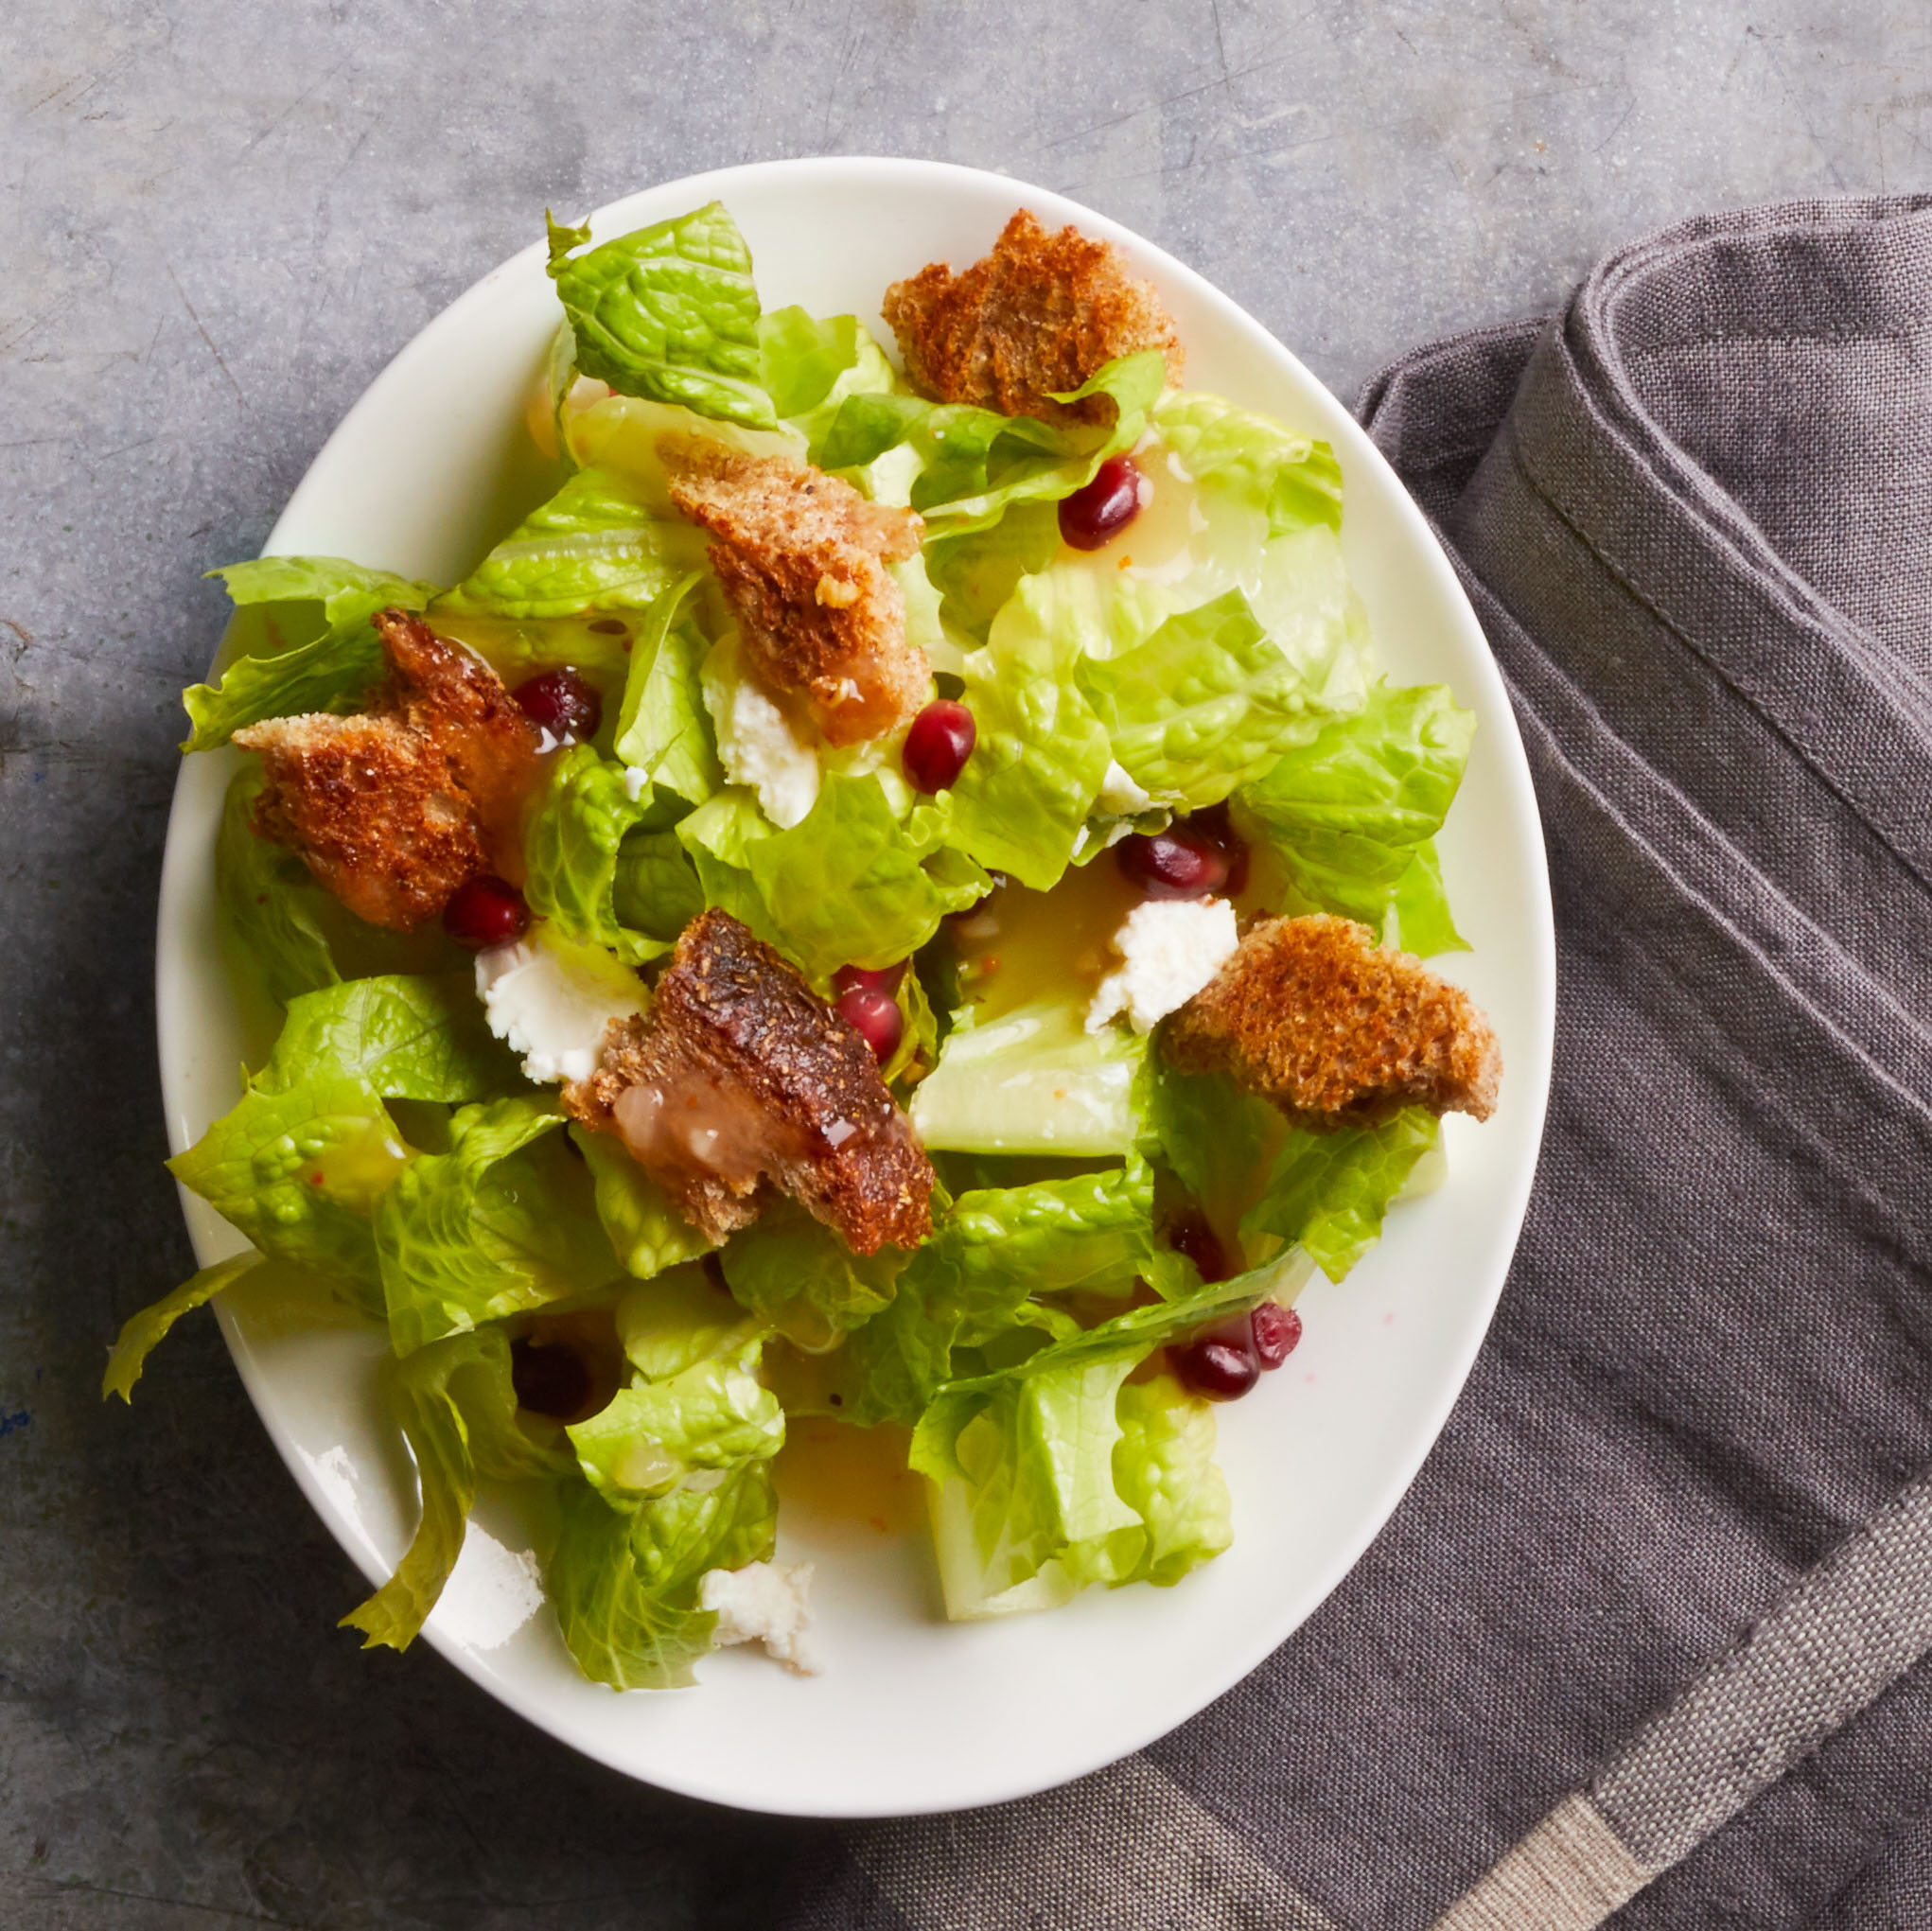 Don't throw out that stale bread! Instead make this quick, easy, and delicious Tuscan salad.